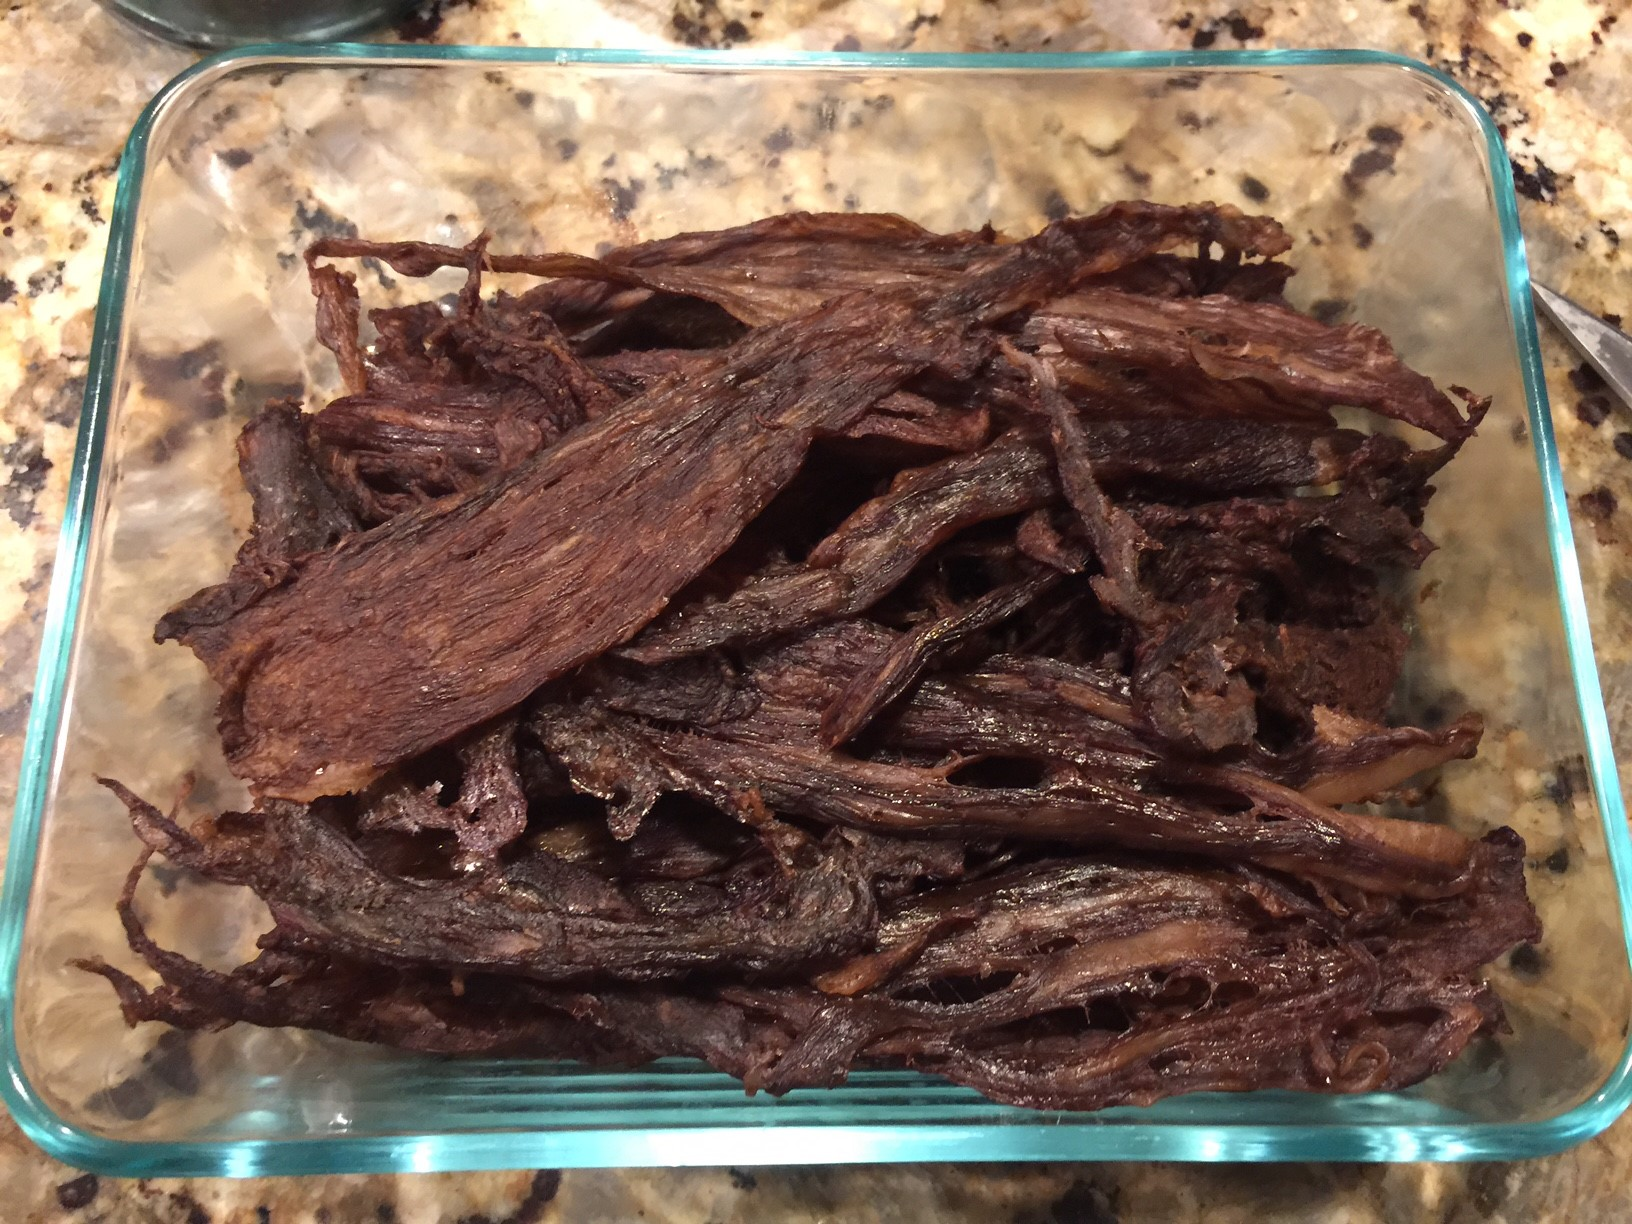 I so love making jerky, and its delish (and no sugar!).